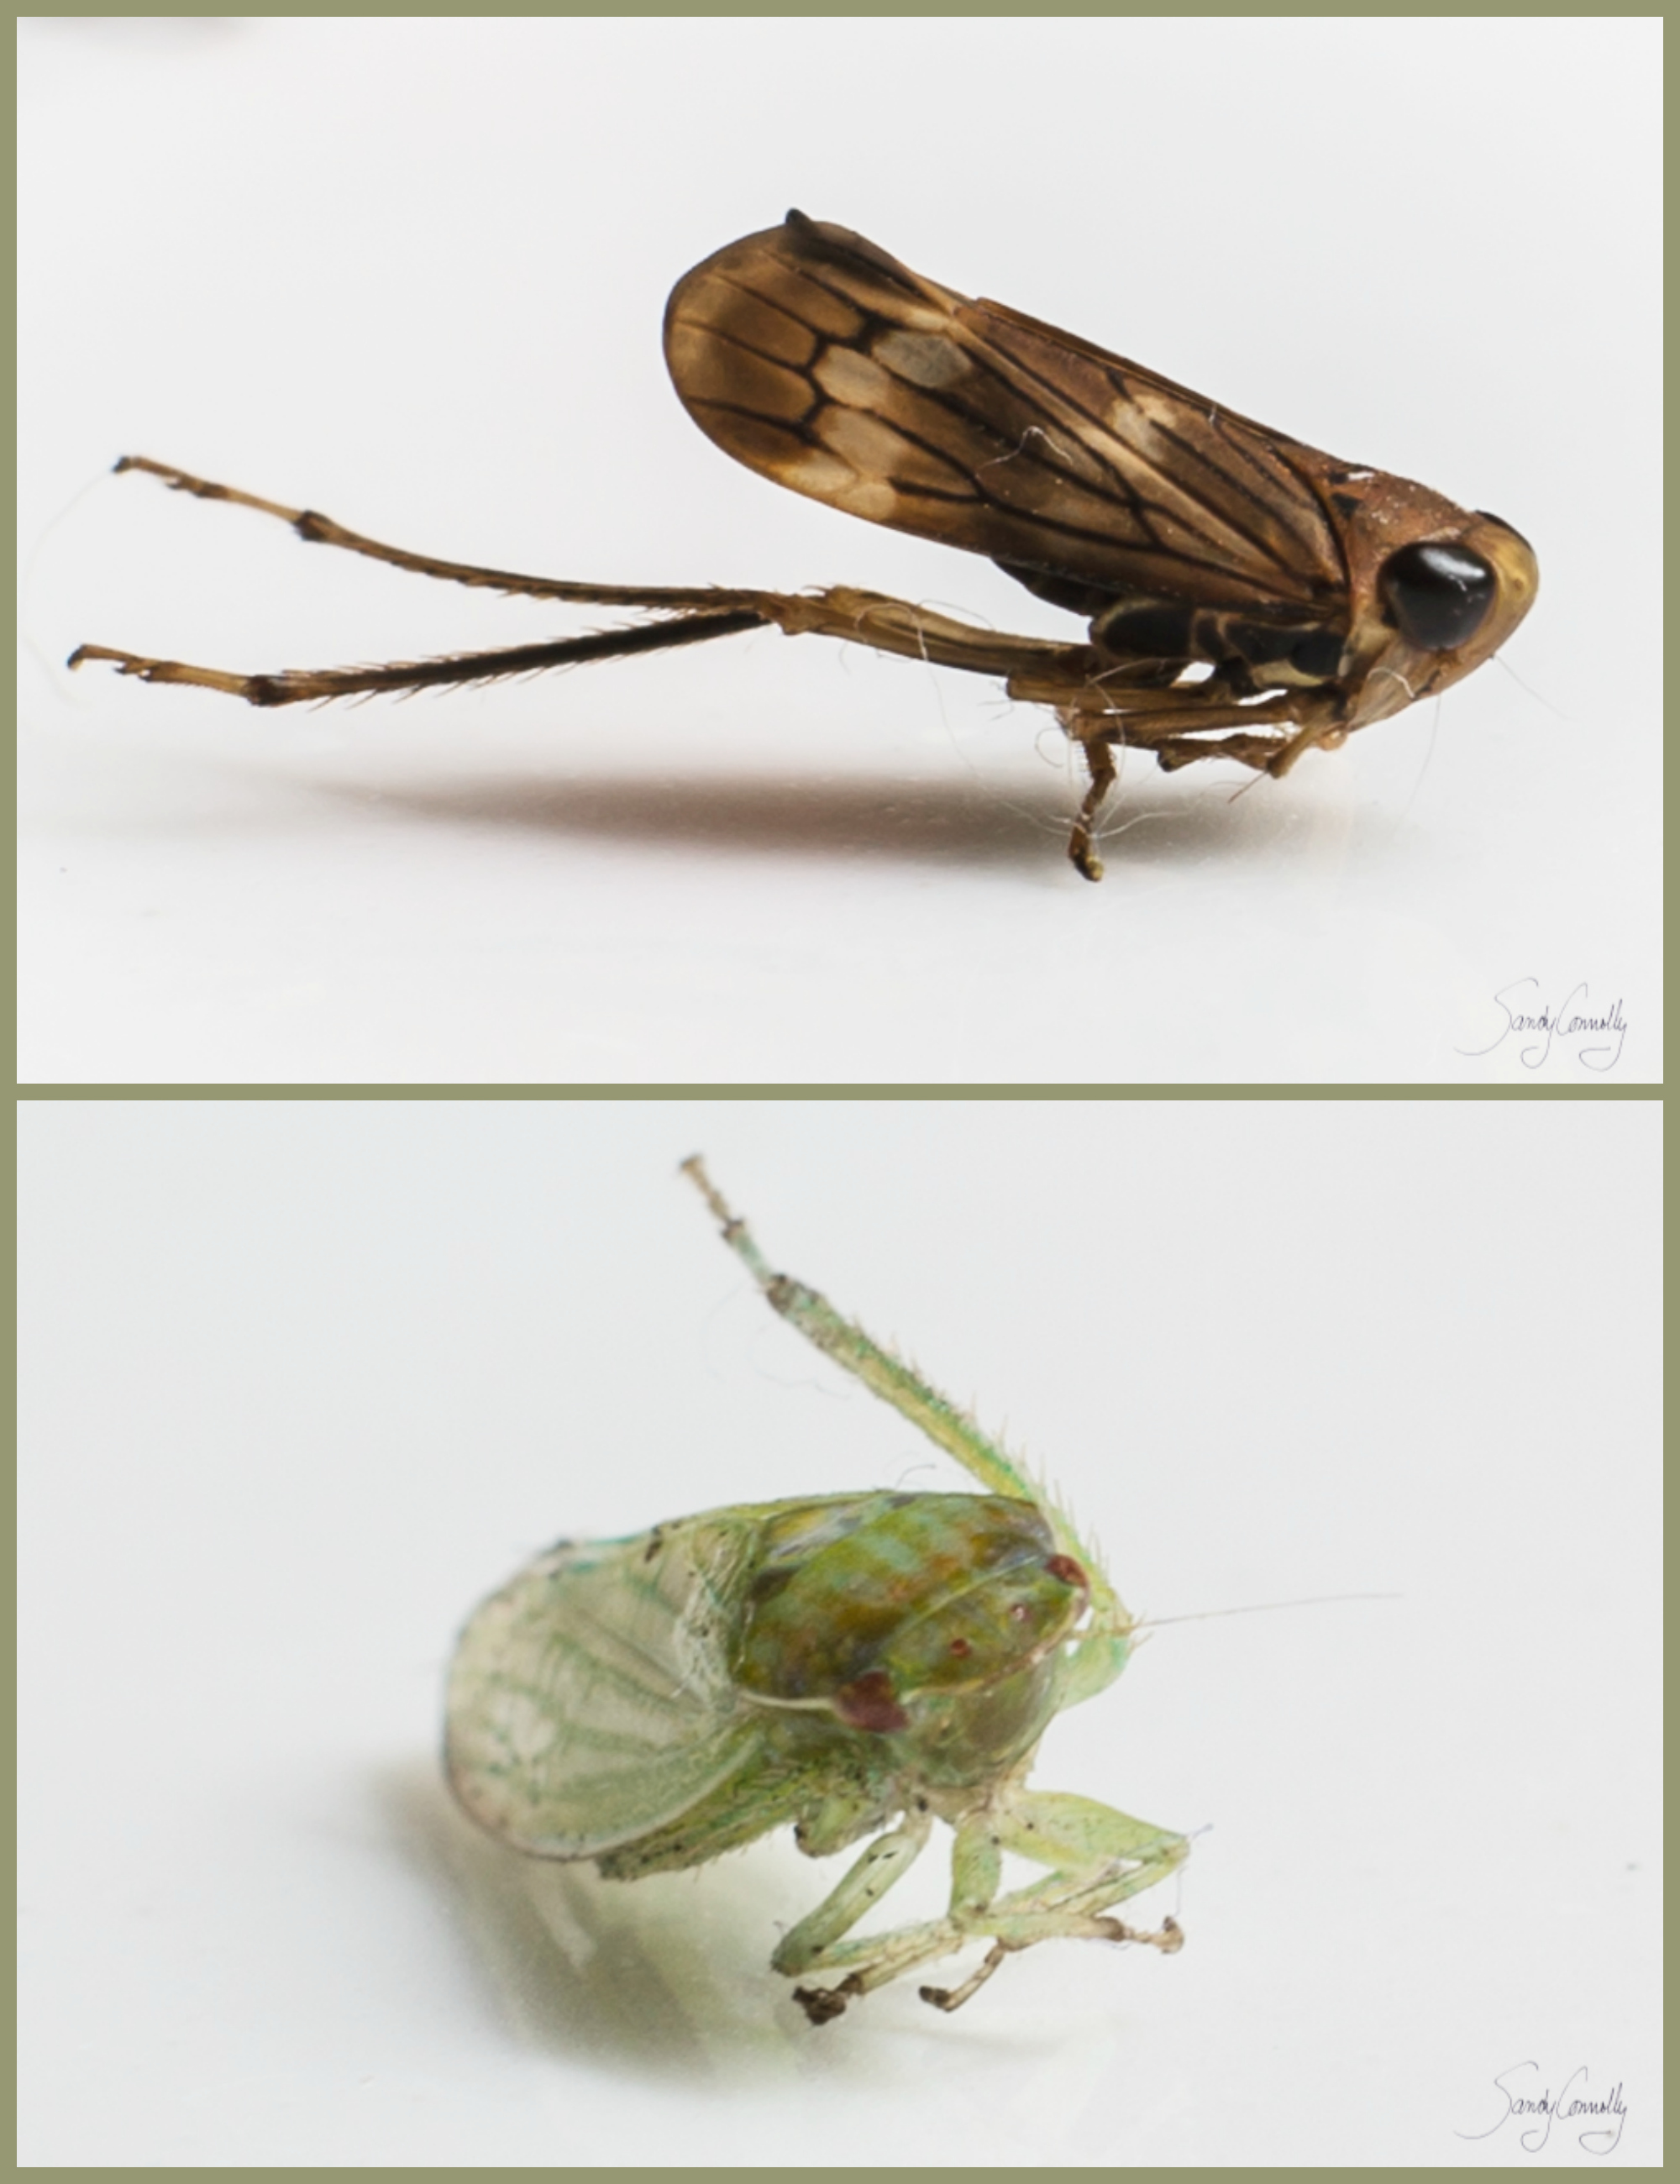 Dead Leafhoppers